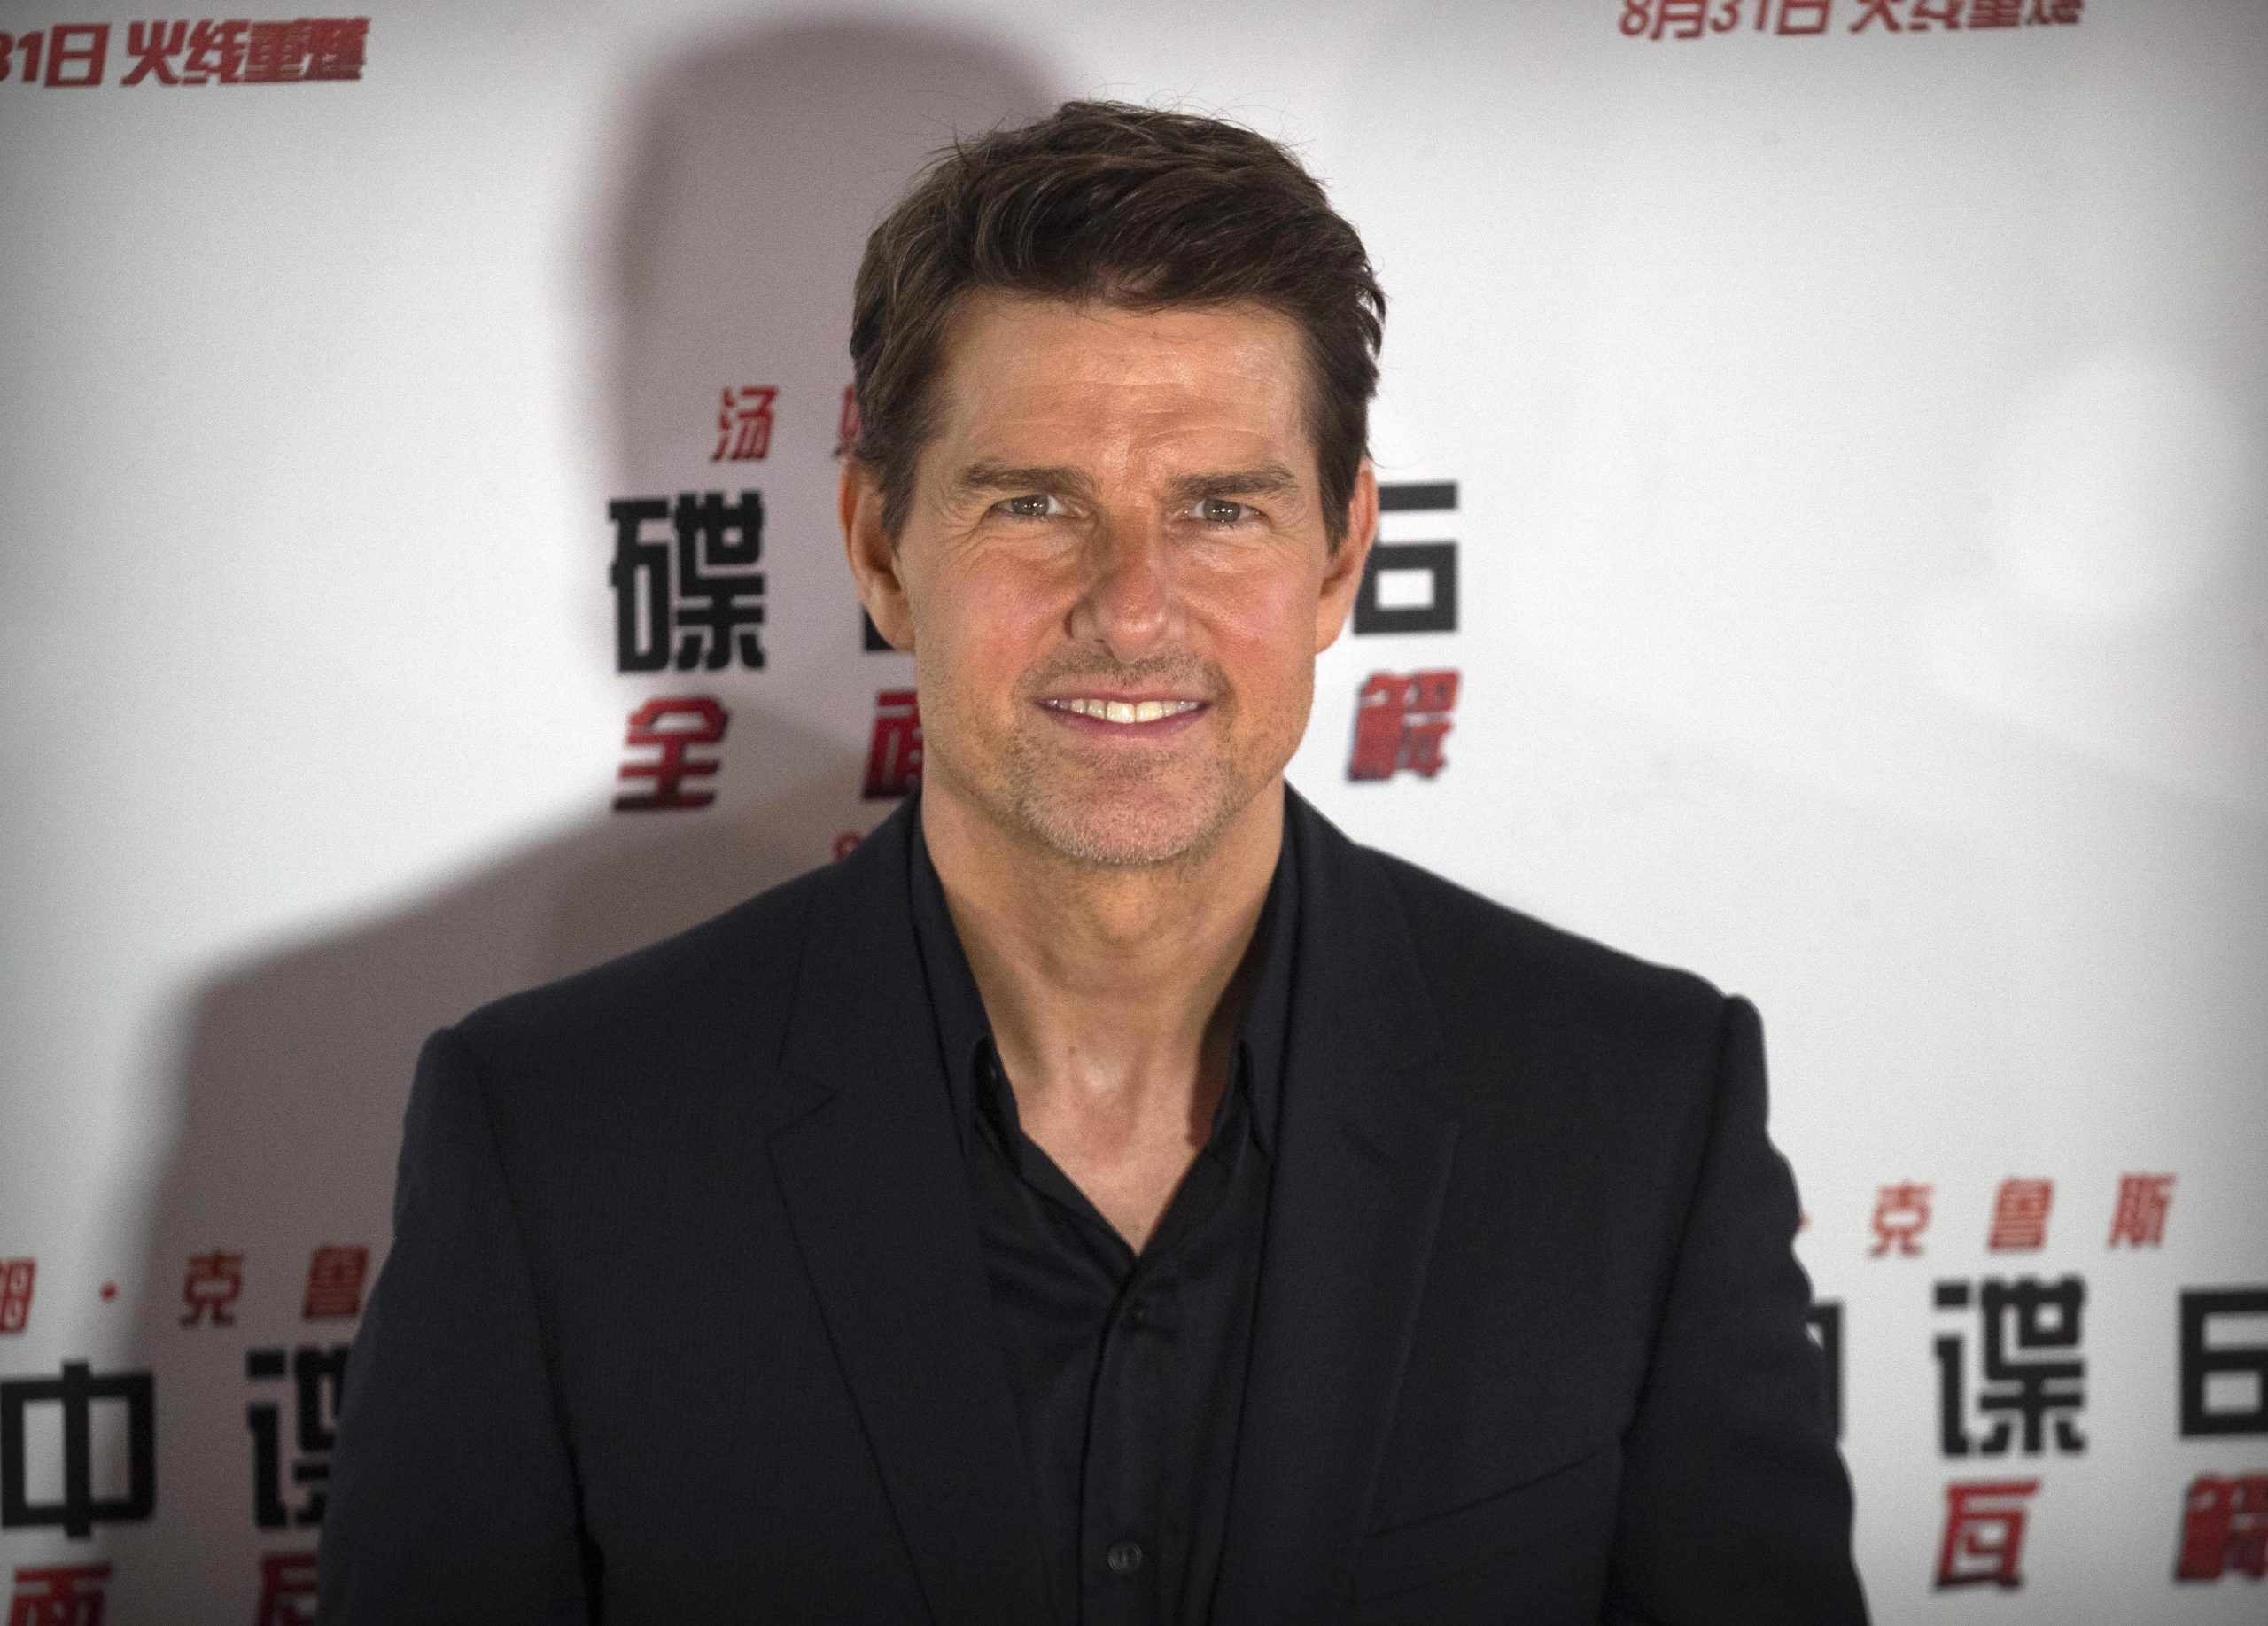 Tom Cruise's movie shot in space takes huge step forward